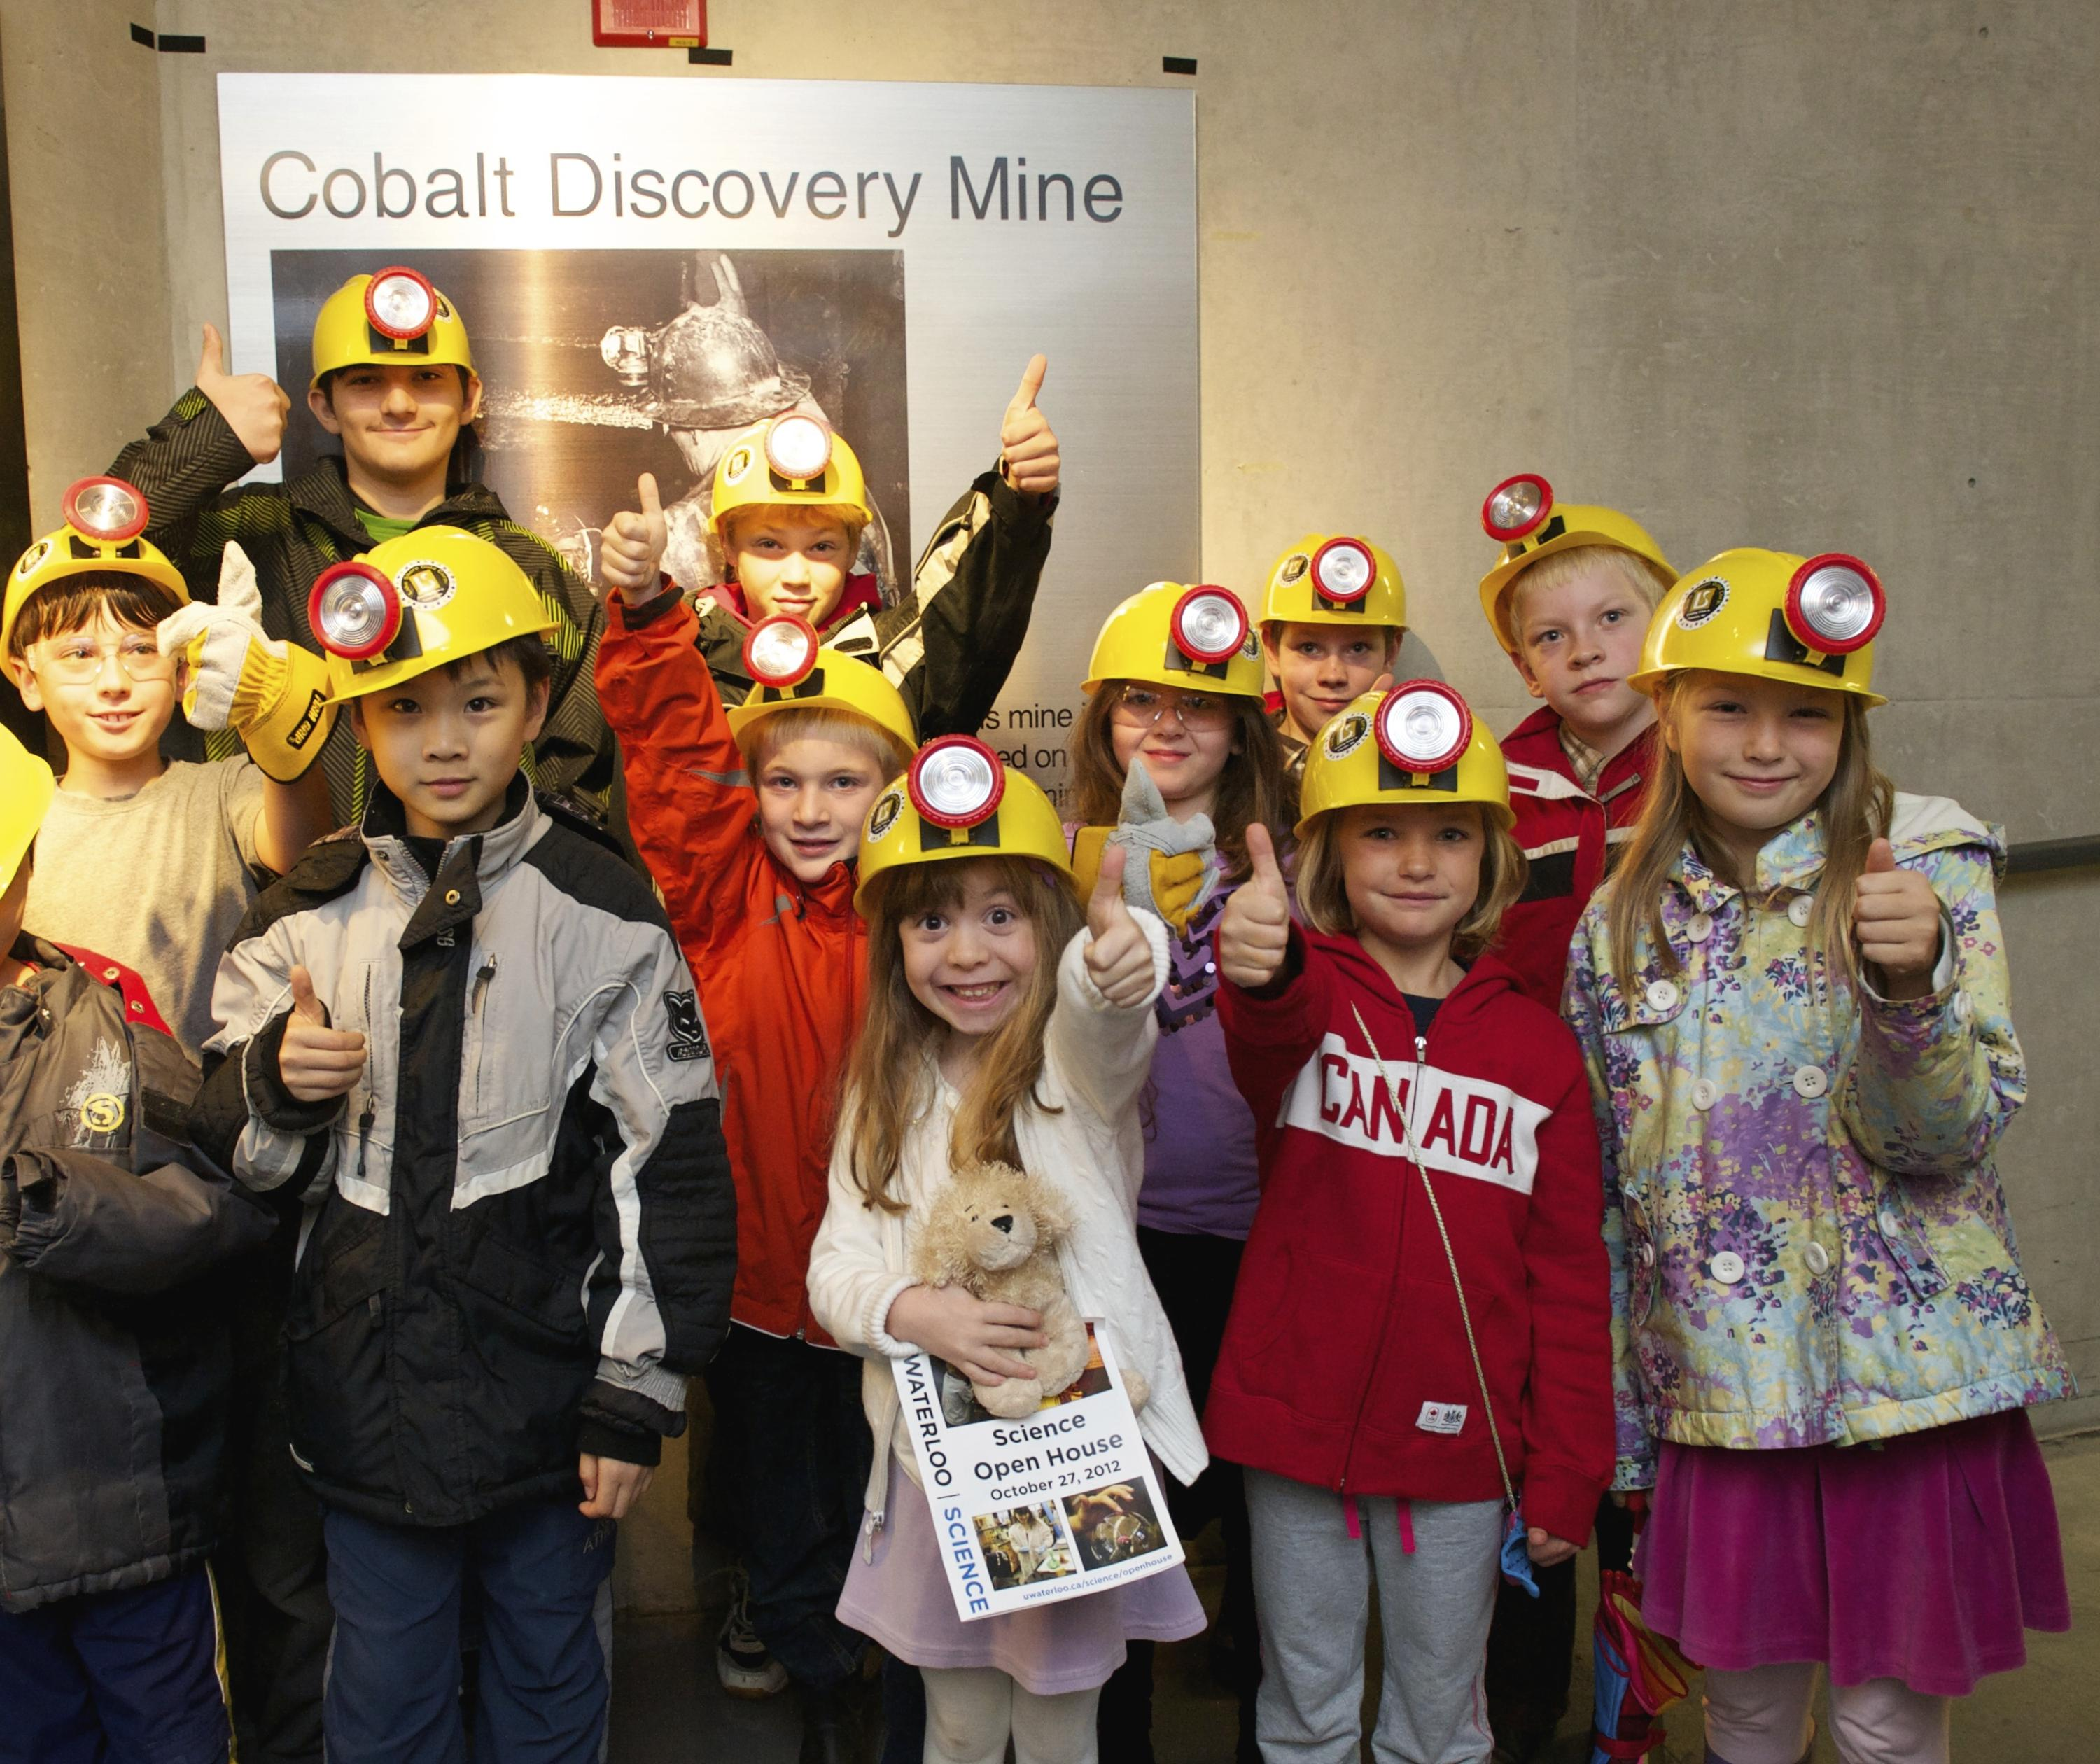 Class of children outside the mining tunnel